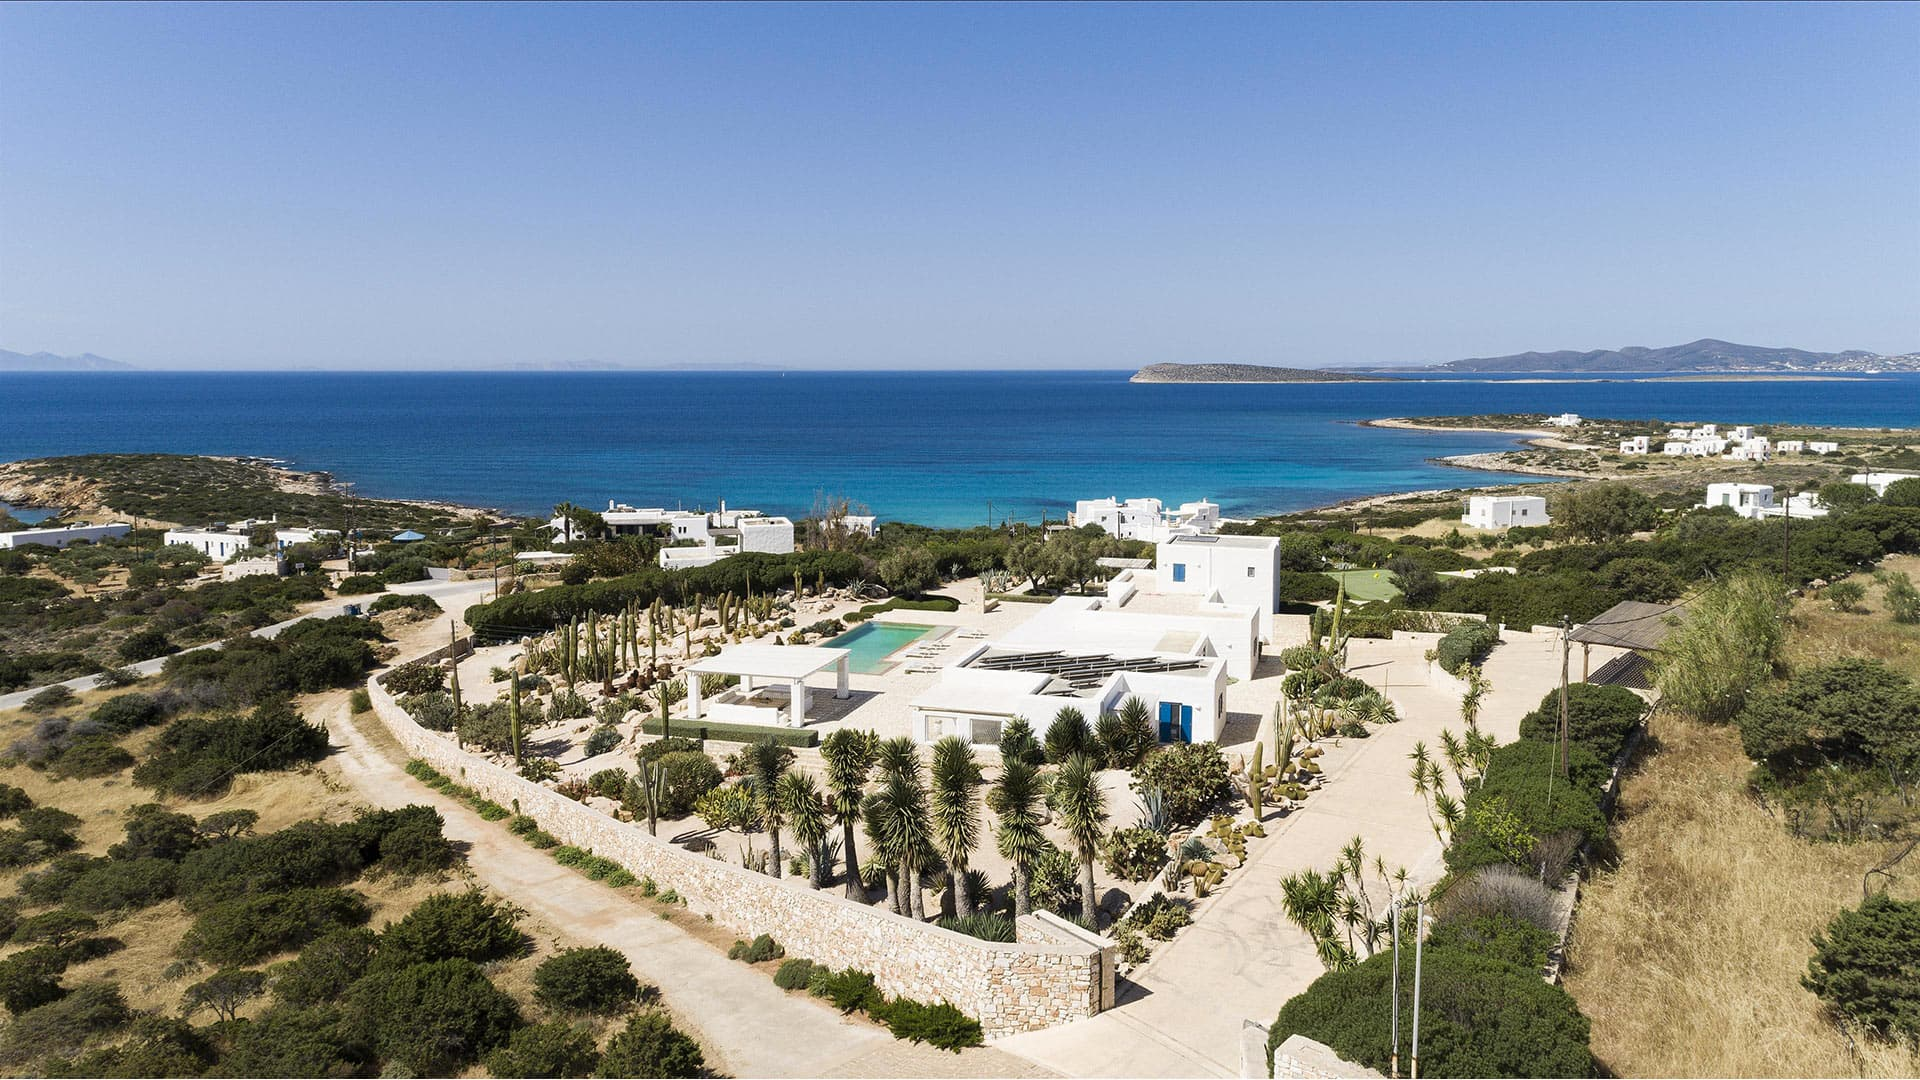 Villa Villa Azol, Rental in Cyclades - Other islands